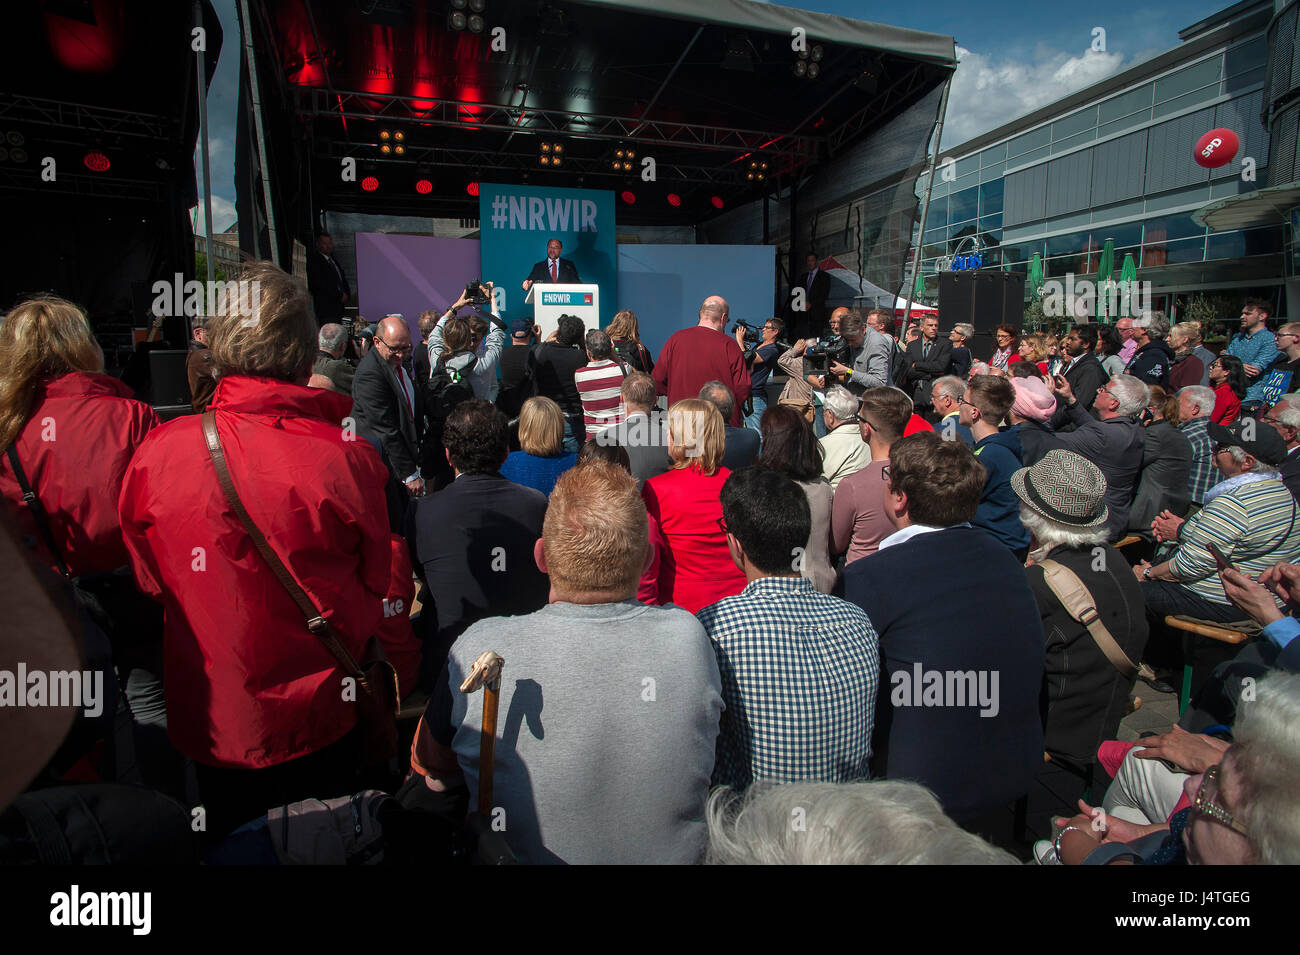 Martin Schulz leader of the SPD speaking at rally in Duisburg, Germany. - Stock Image